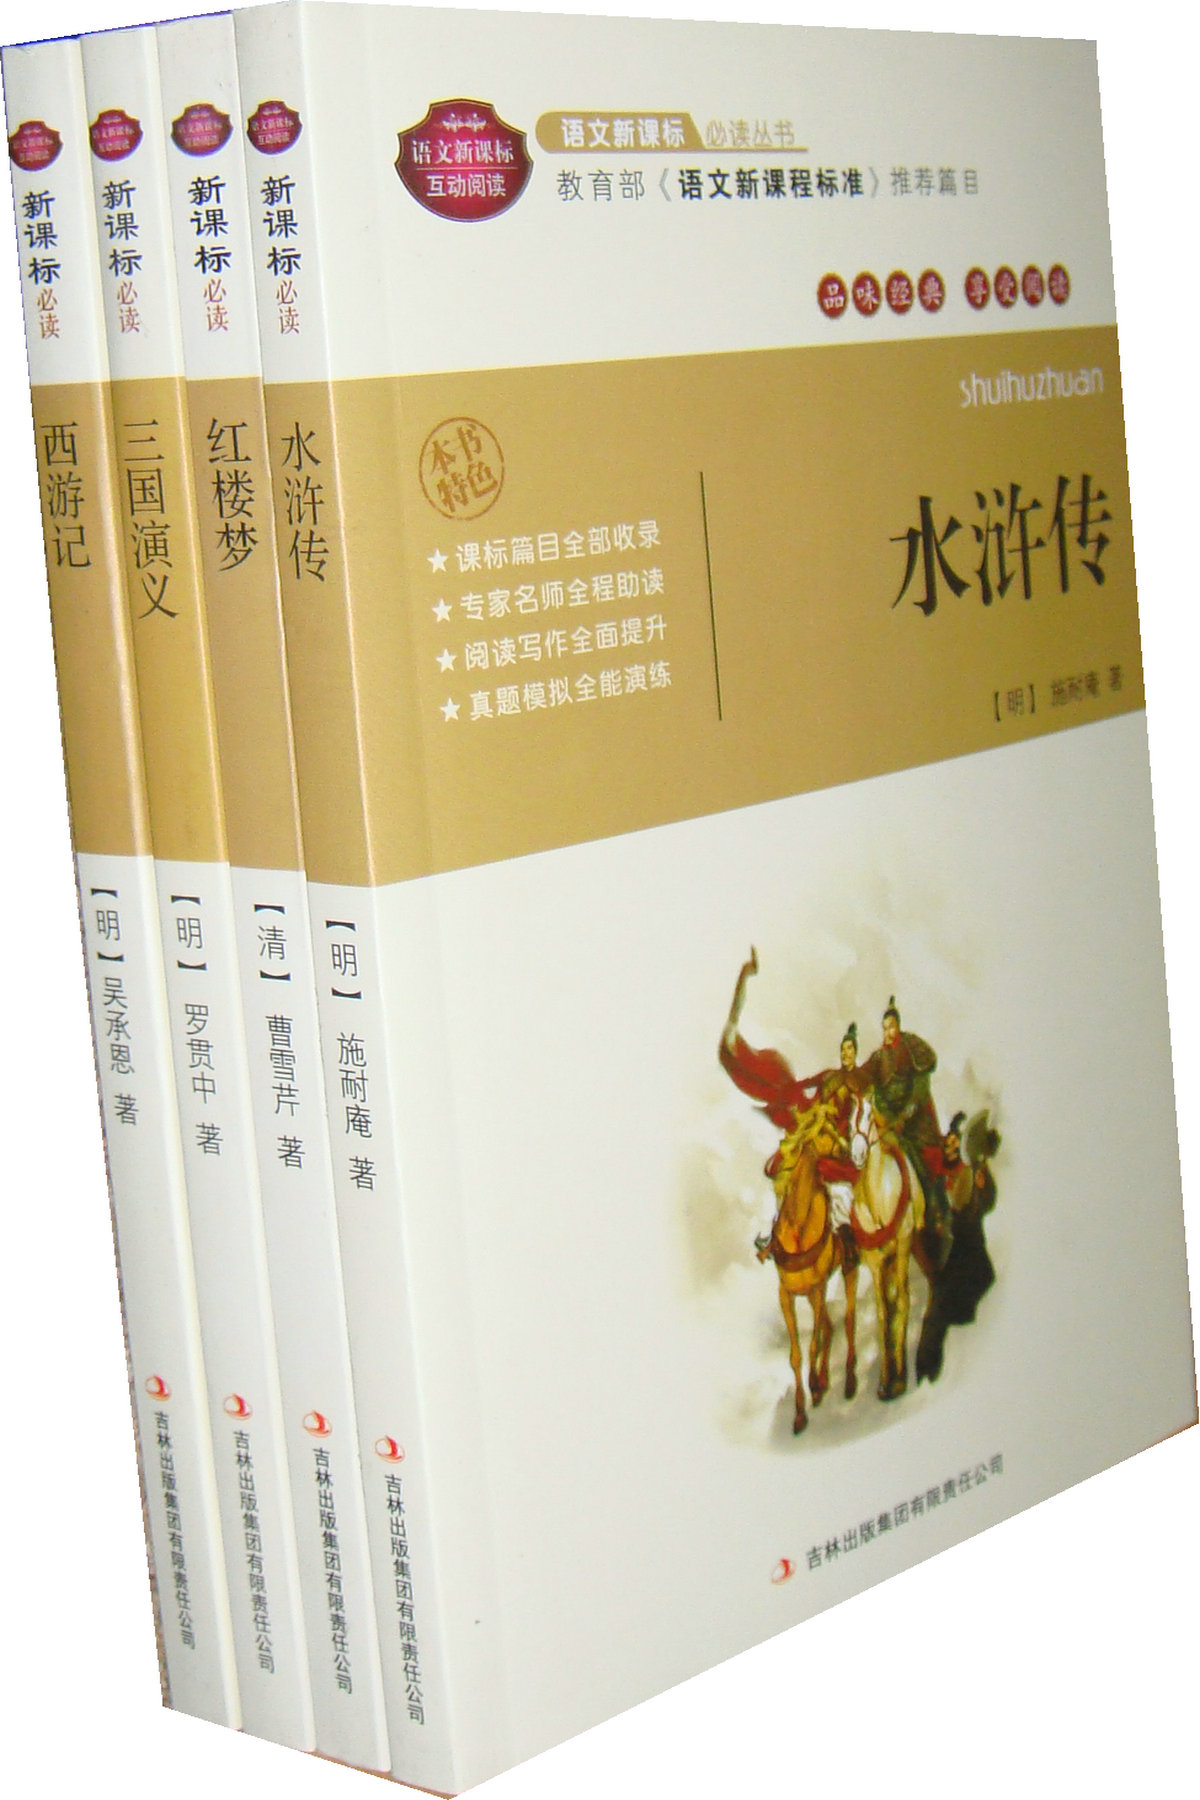 Genuine free shipping language new curriculum reading classic dream of red mansions + + + three kingdoms water margin journey to the ministry of education recommended Contents